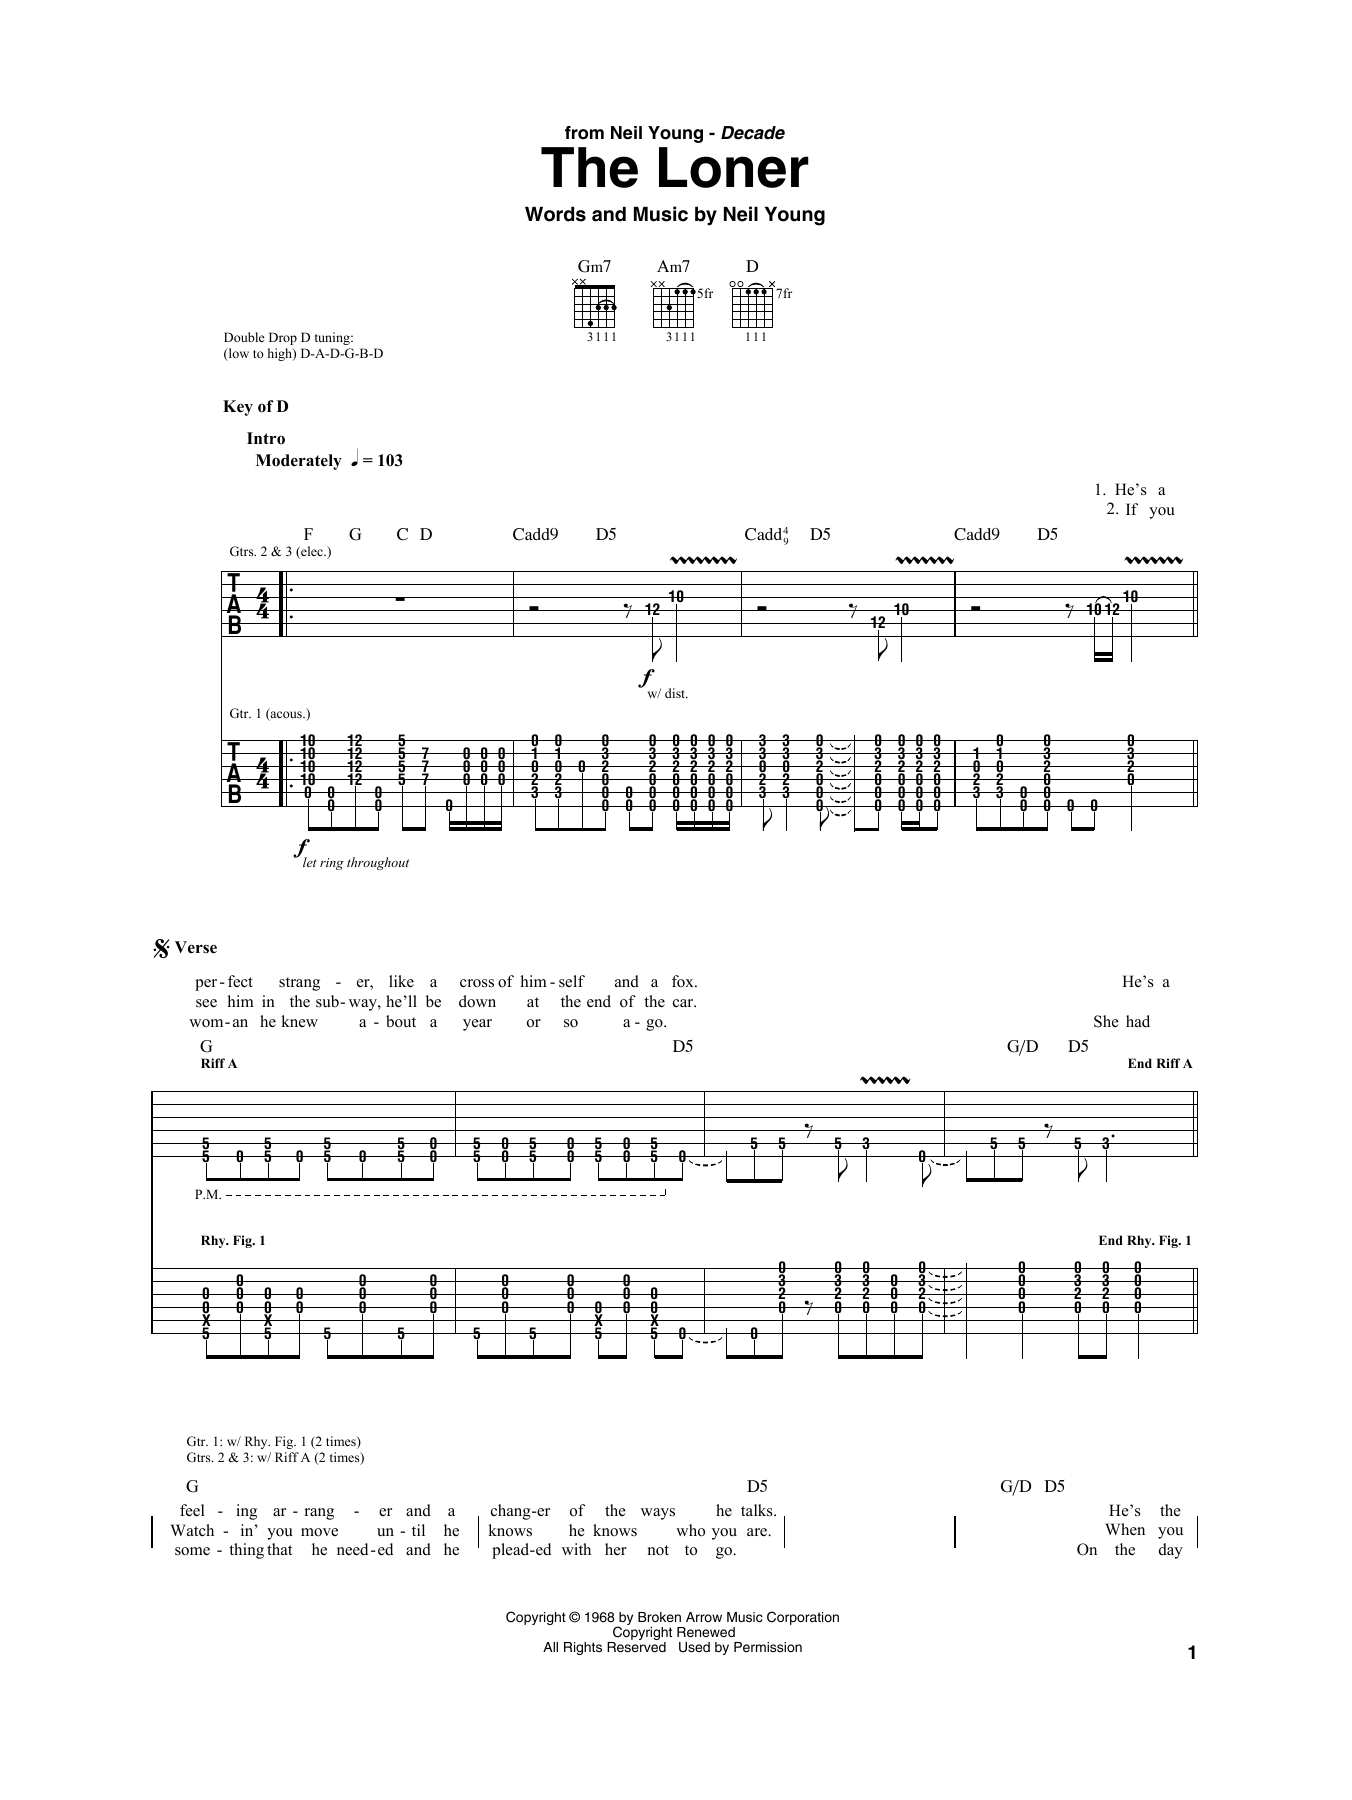 Neil Young The Loner Sheet Music Notes Chords Printable Pop